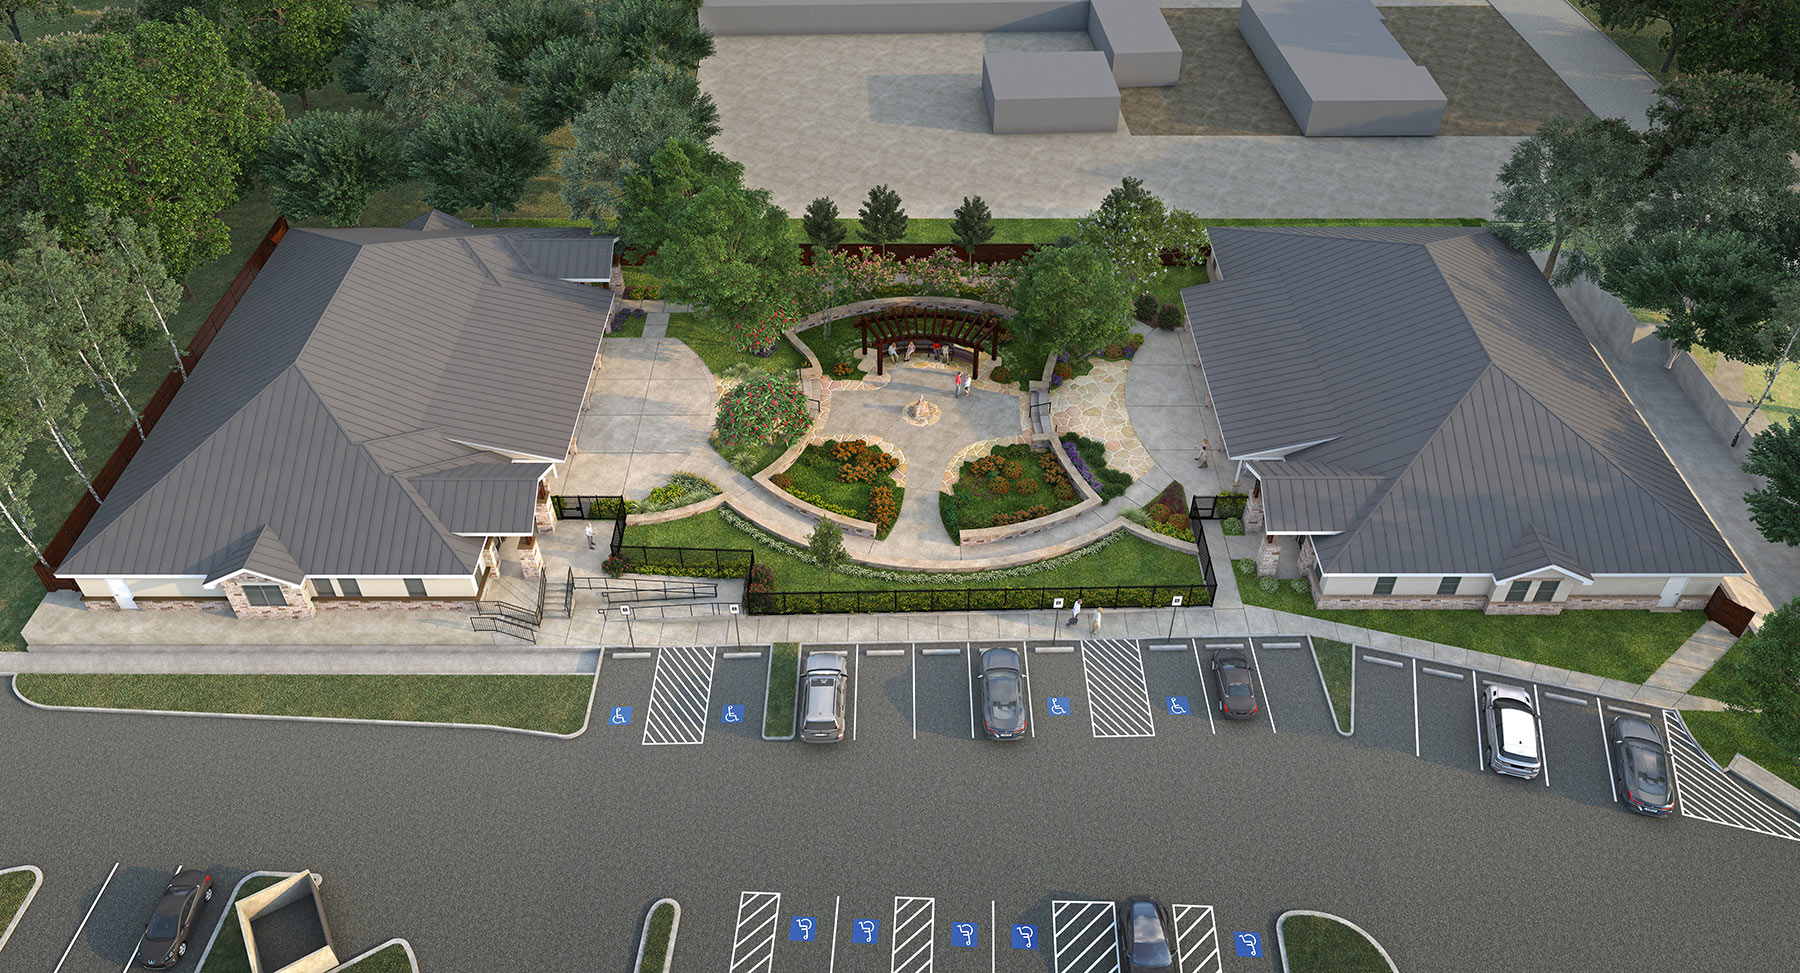 Serenity Oaks B Aerial | Serenity Oaks Assisted Living & Memory Care, Respite Care in Live Oaks, San Antonio, Texas